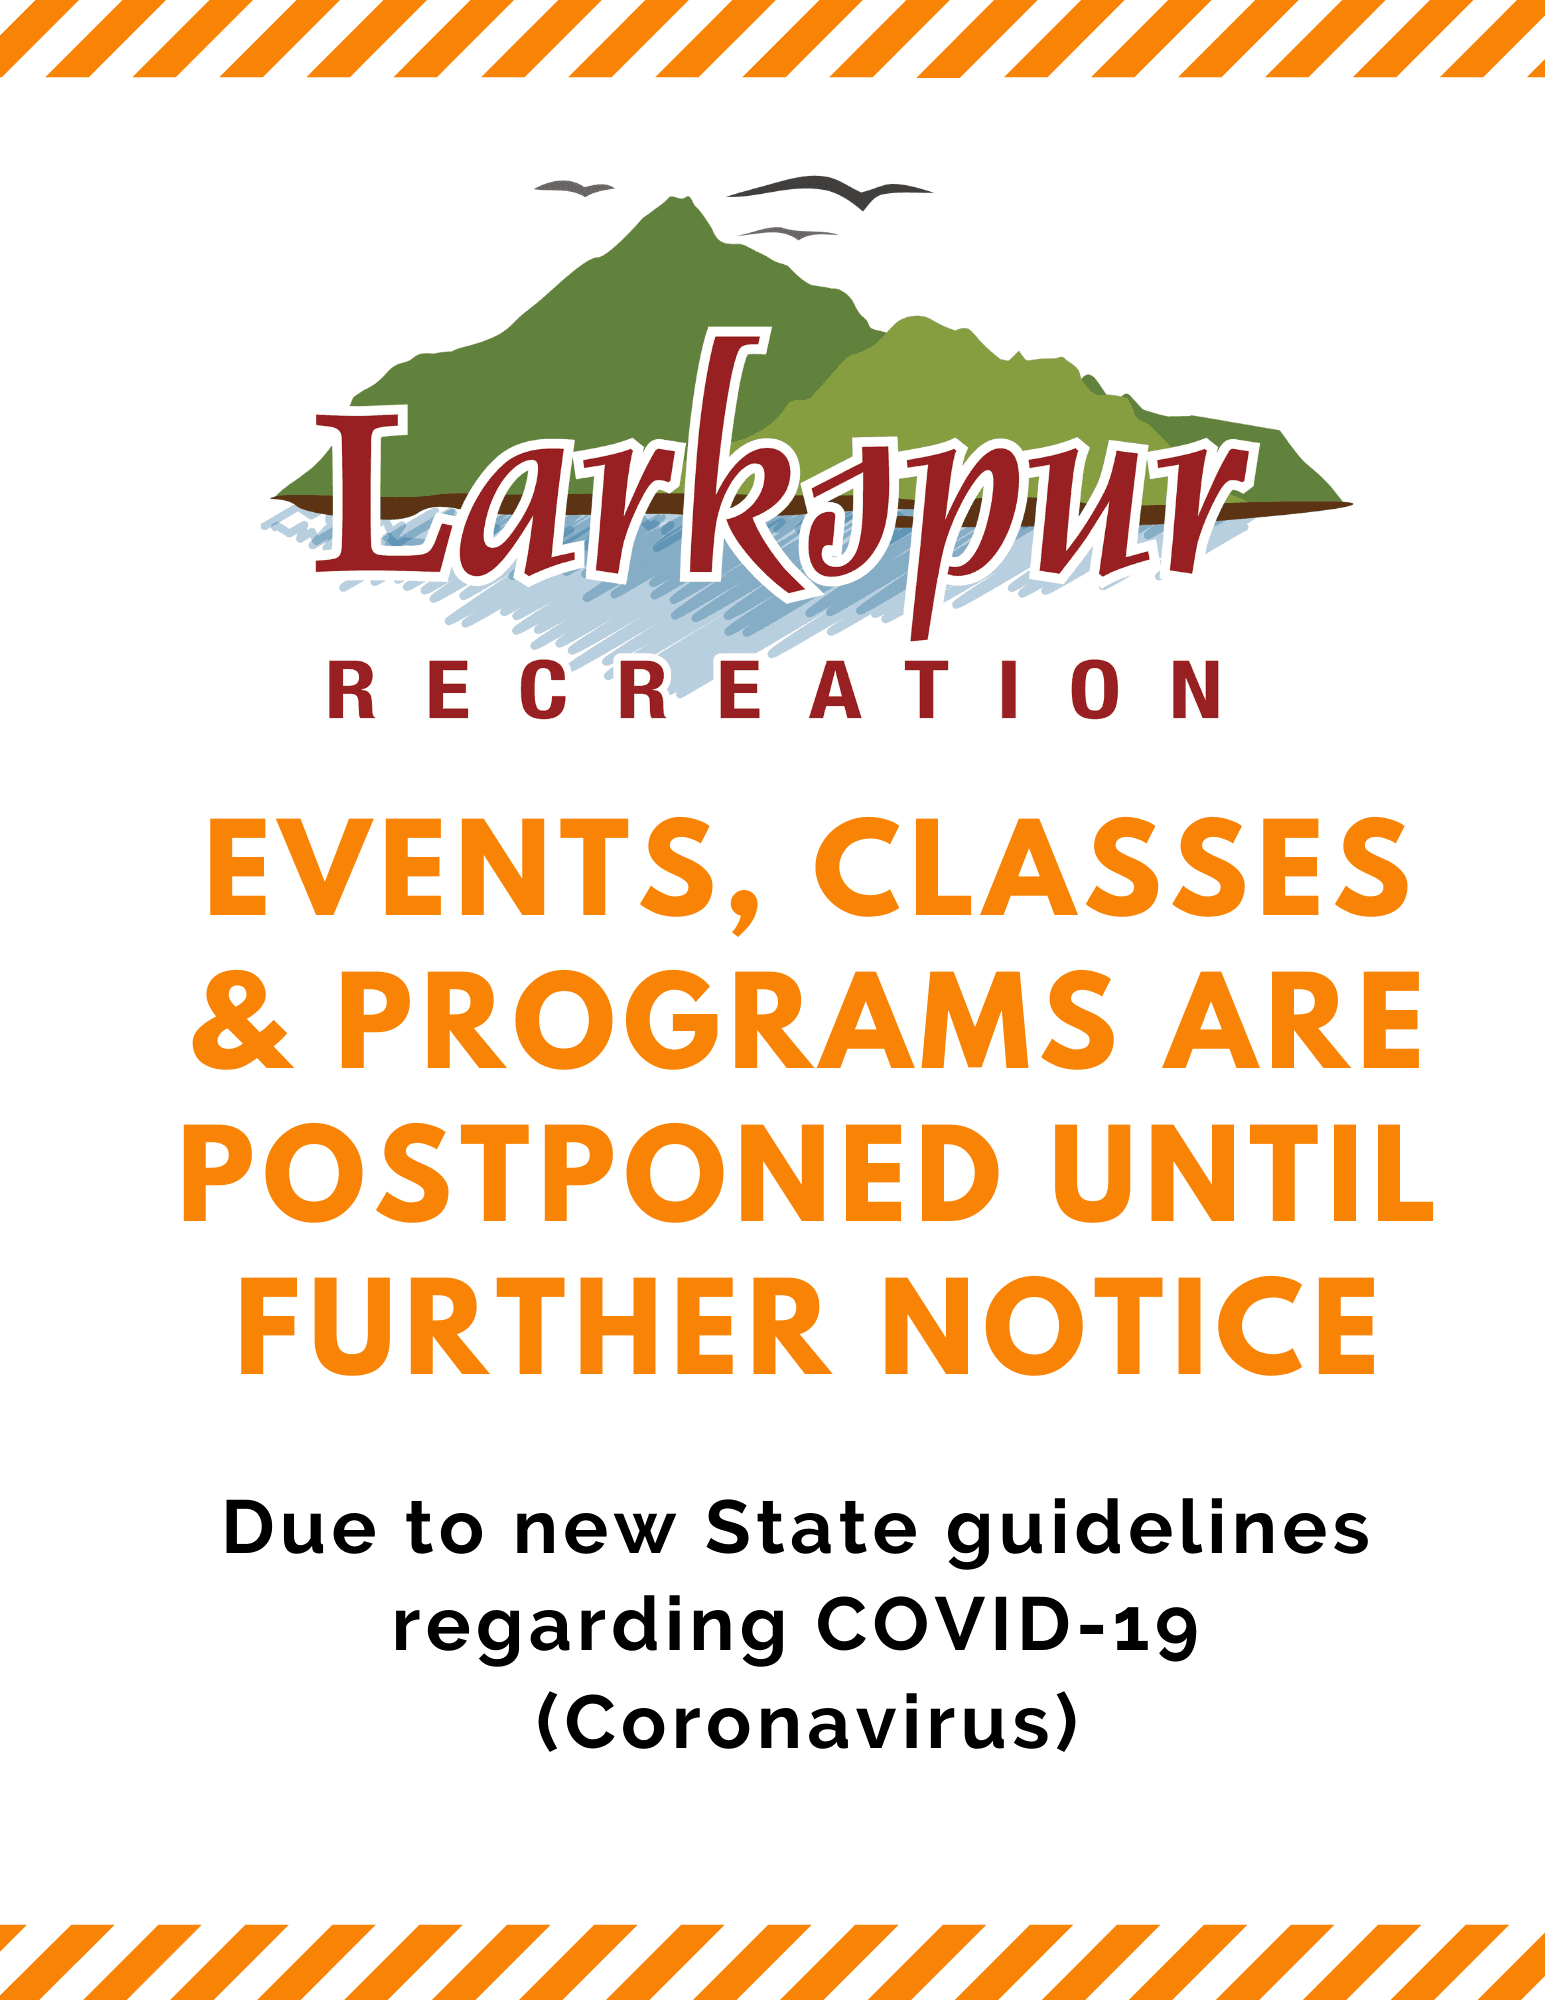 Recreation Postponed